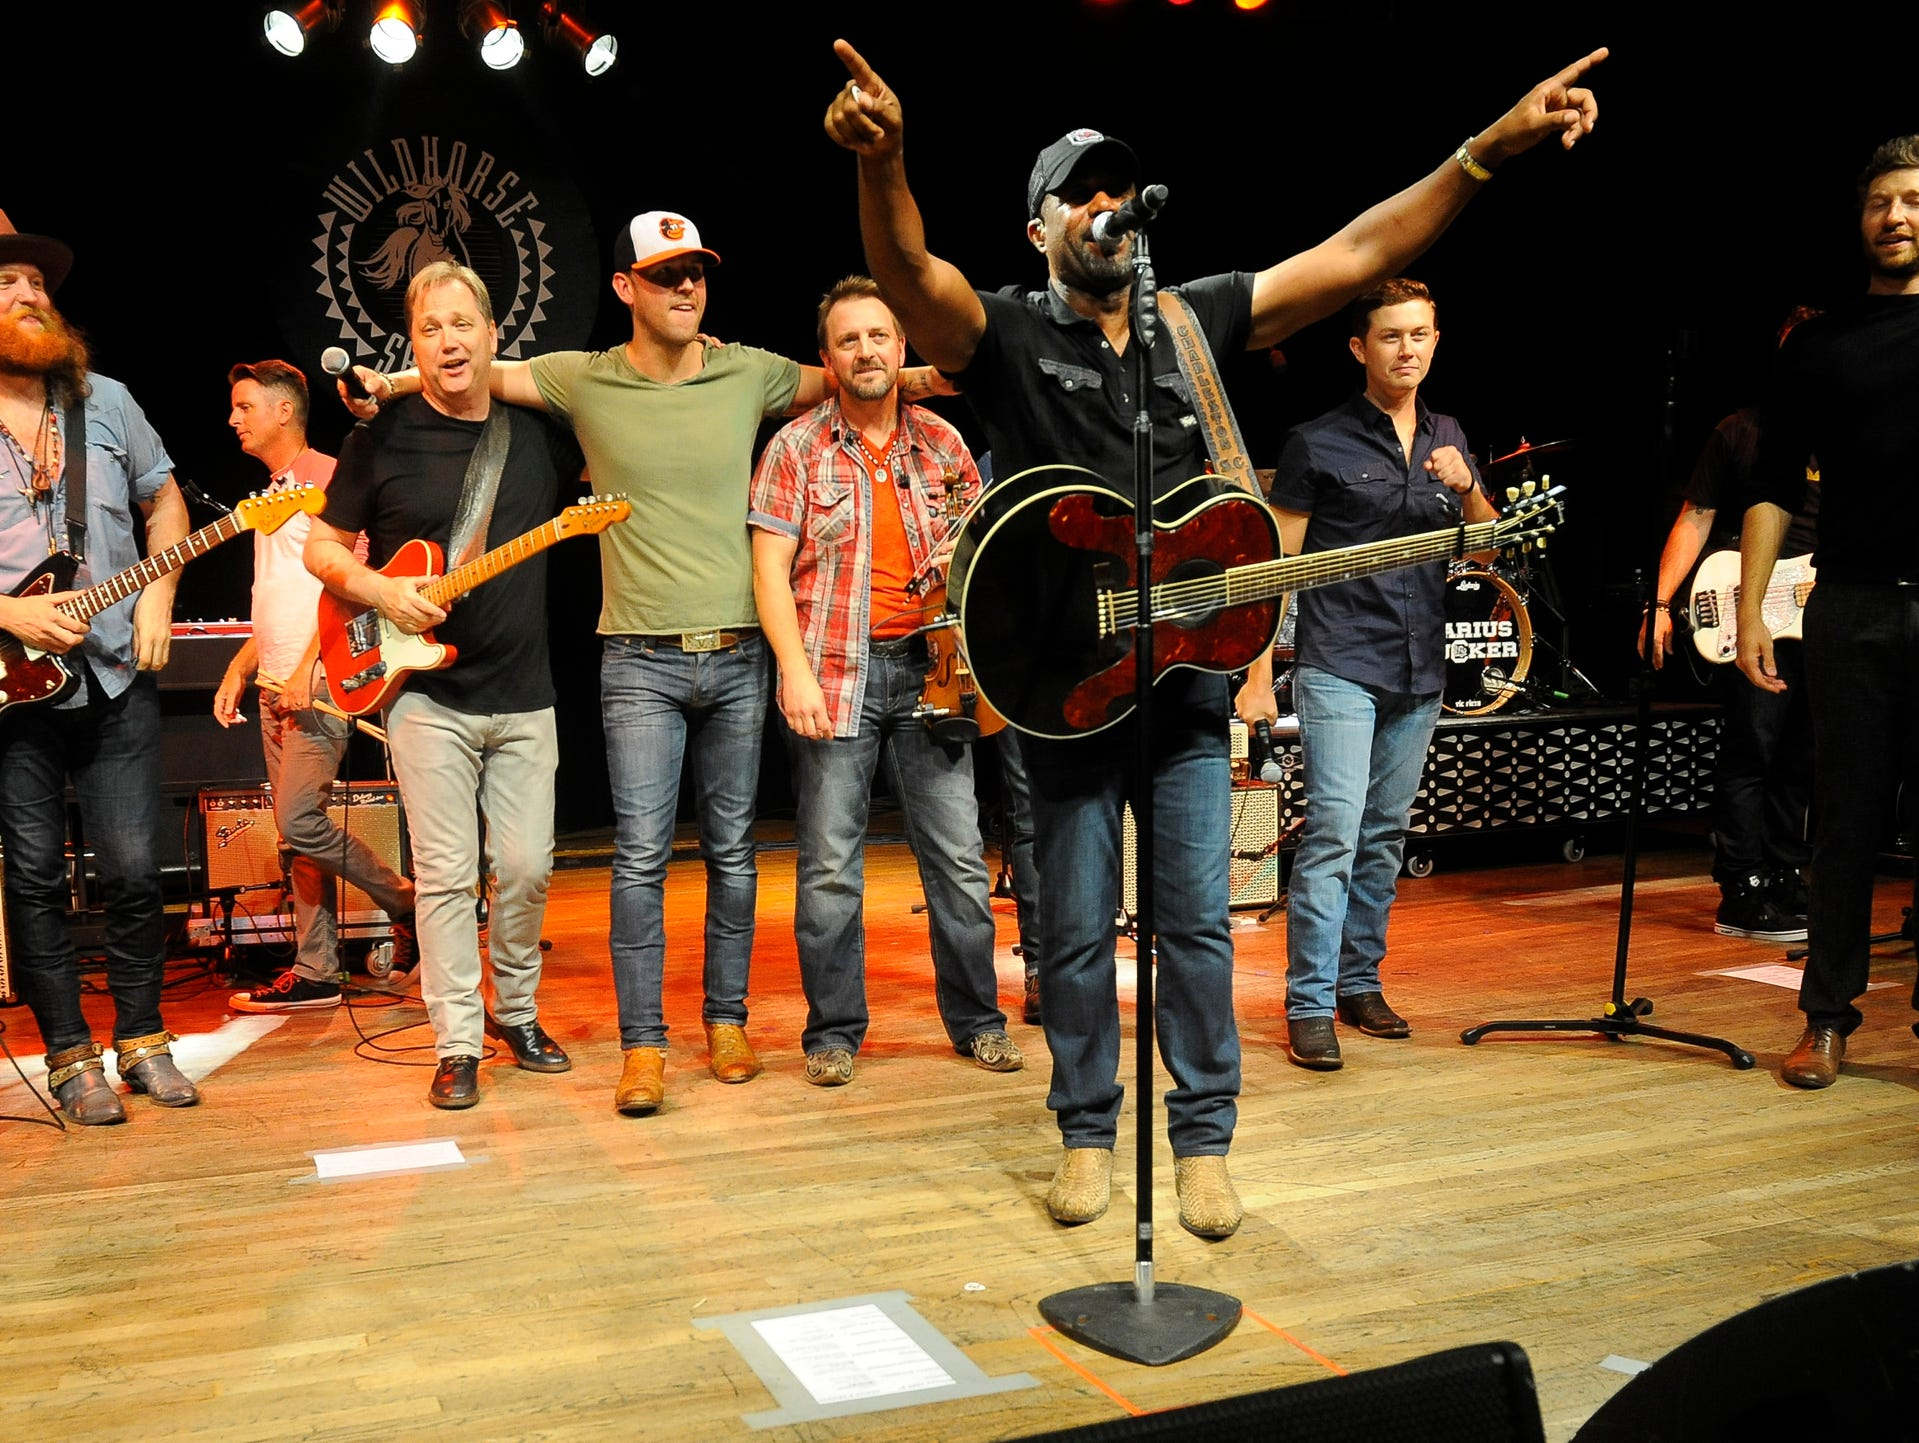 Darius Rucker leads the song 'Wagon Wheel' during his